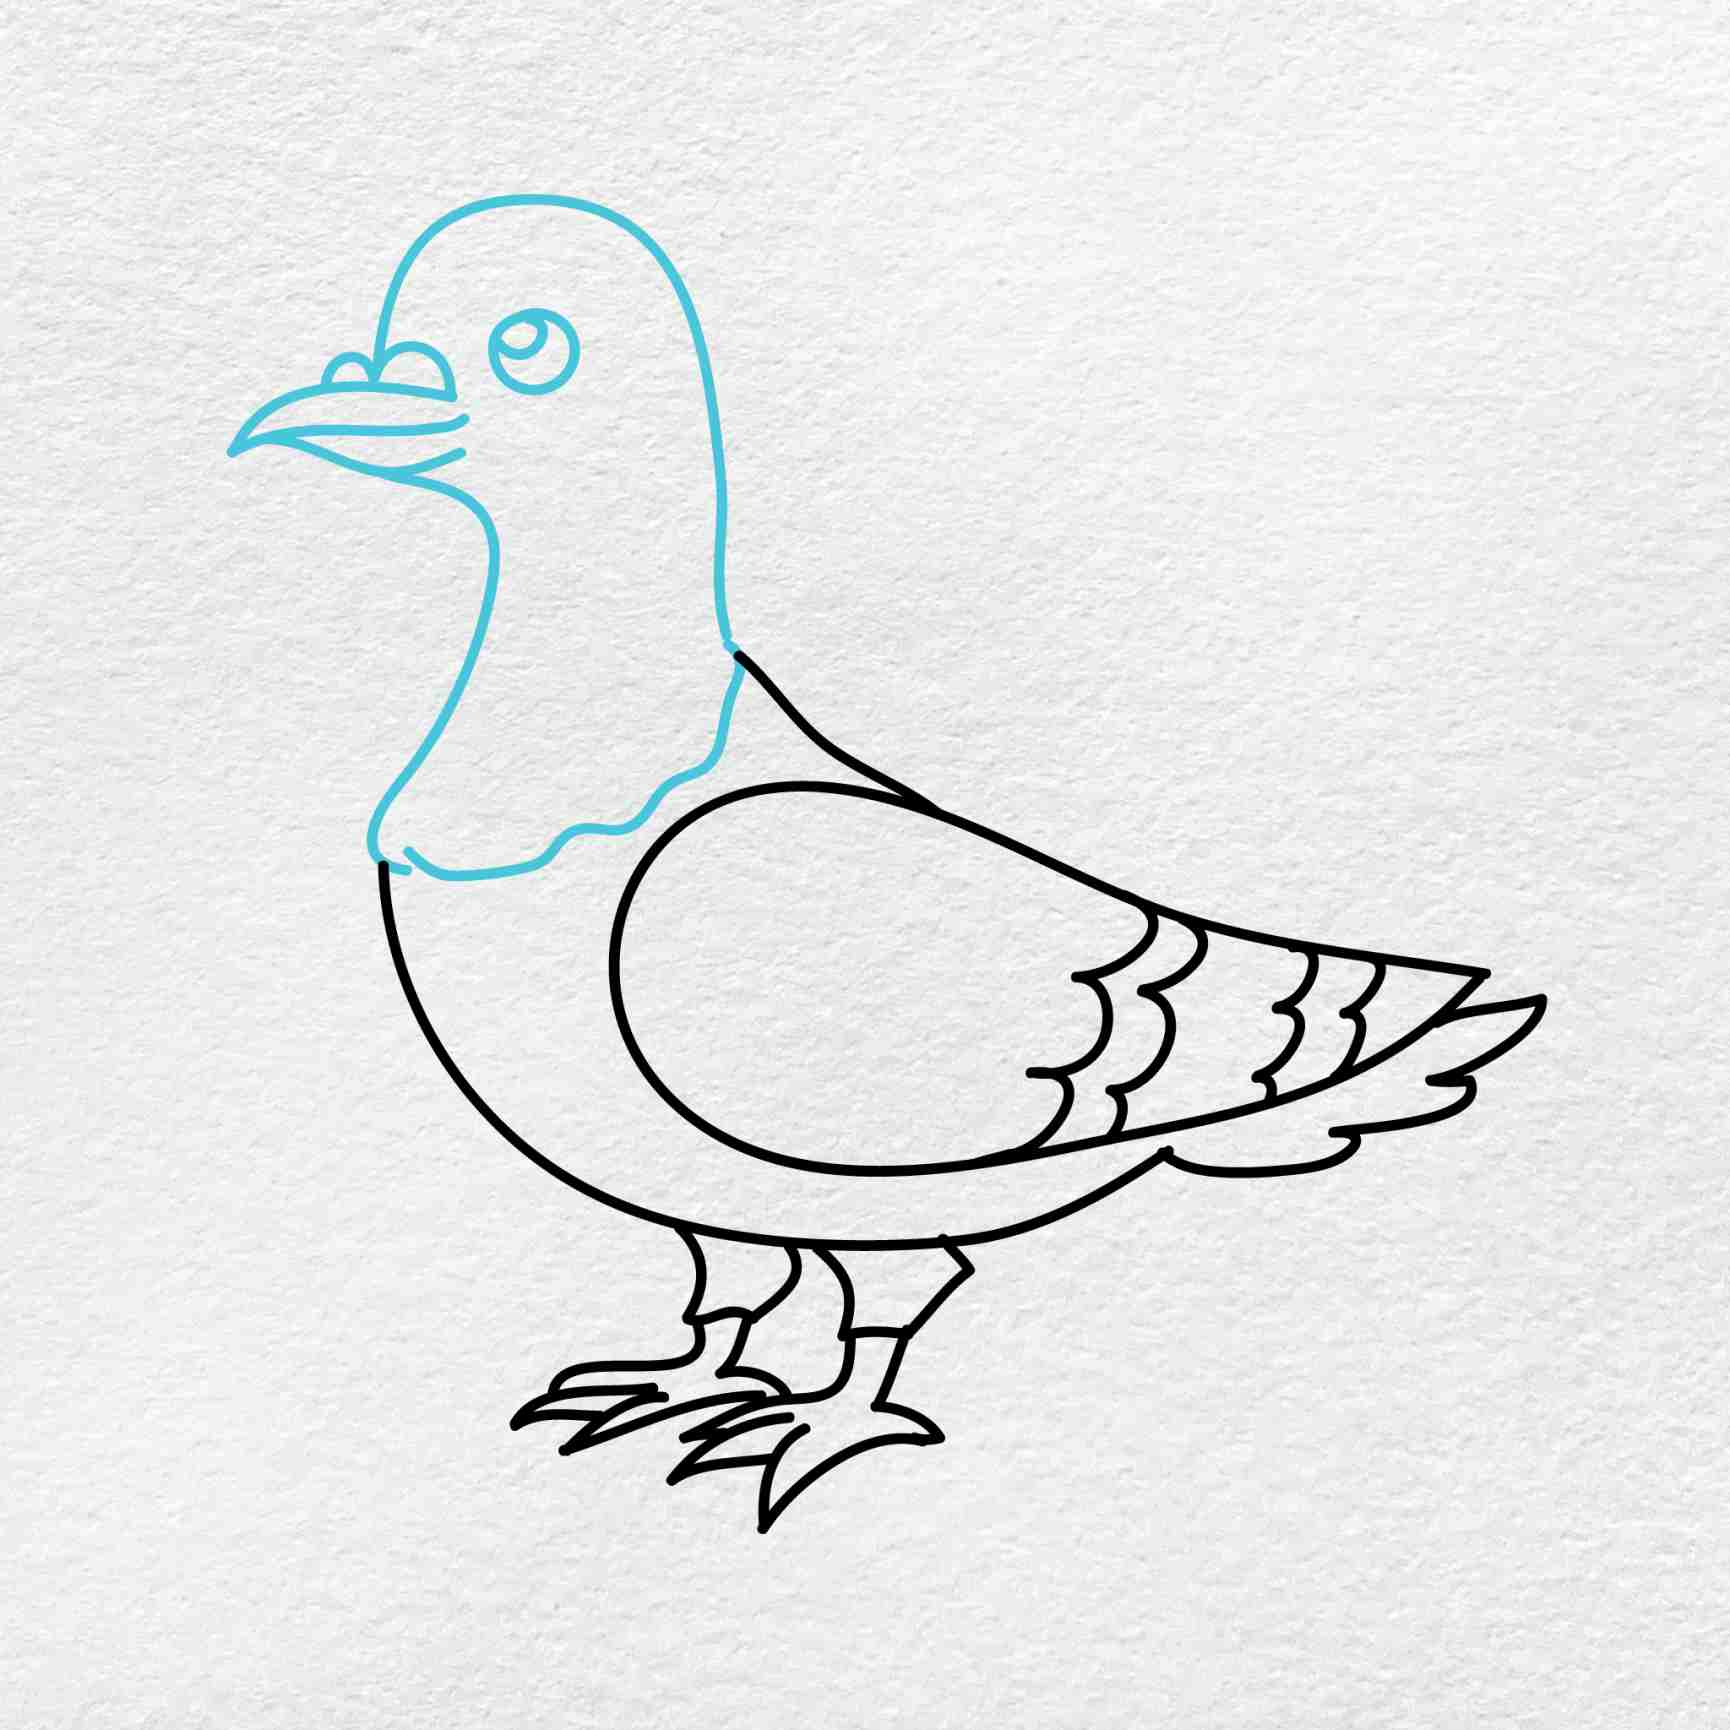 How To Draw A Pigeon: Step 5